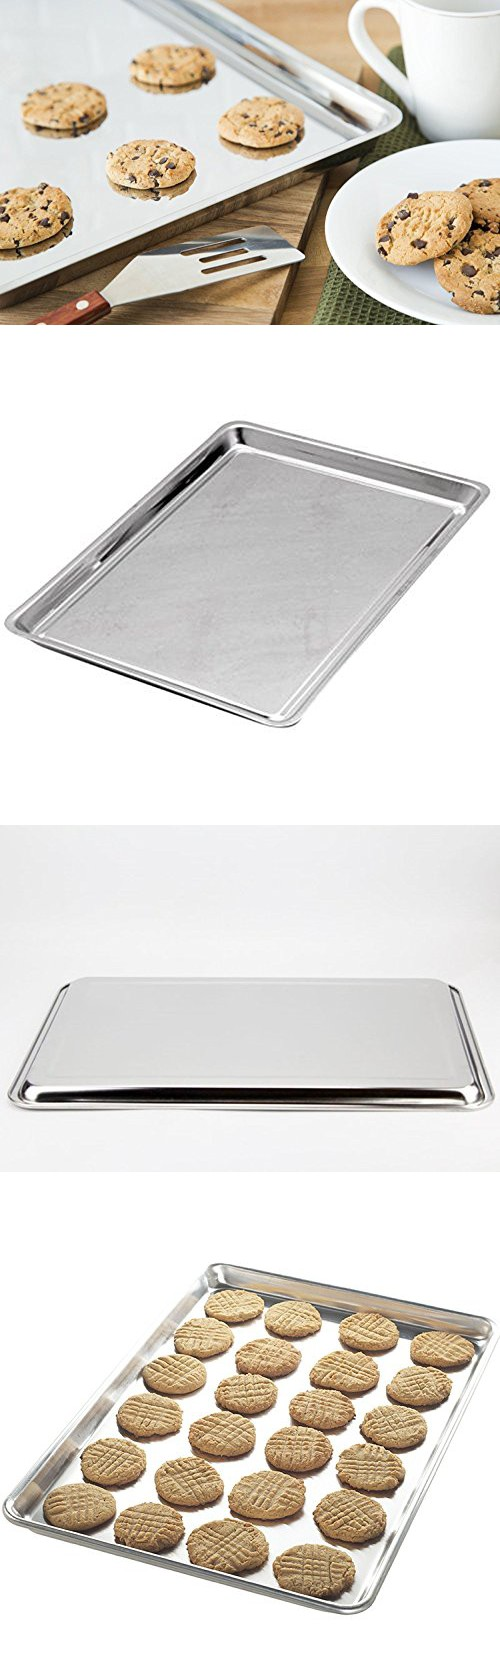 Intbuying Bakeware Cookie Pan Stainless Steel 14 Inch X 10 Inch Jelly Roll Baking Pan Item 249173 Baking Pans Baking Cookie Sheets Baking